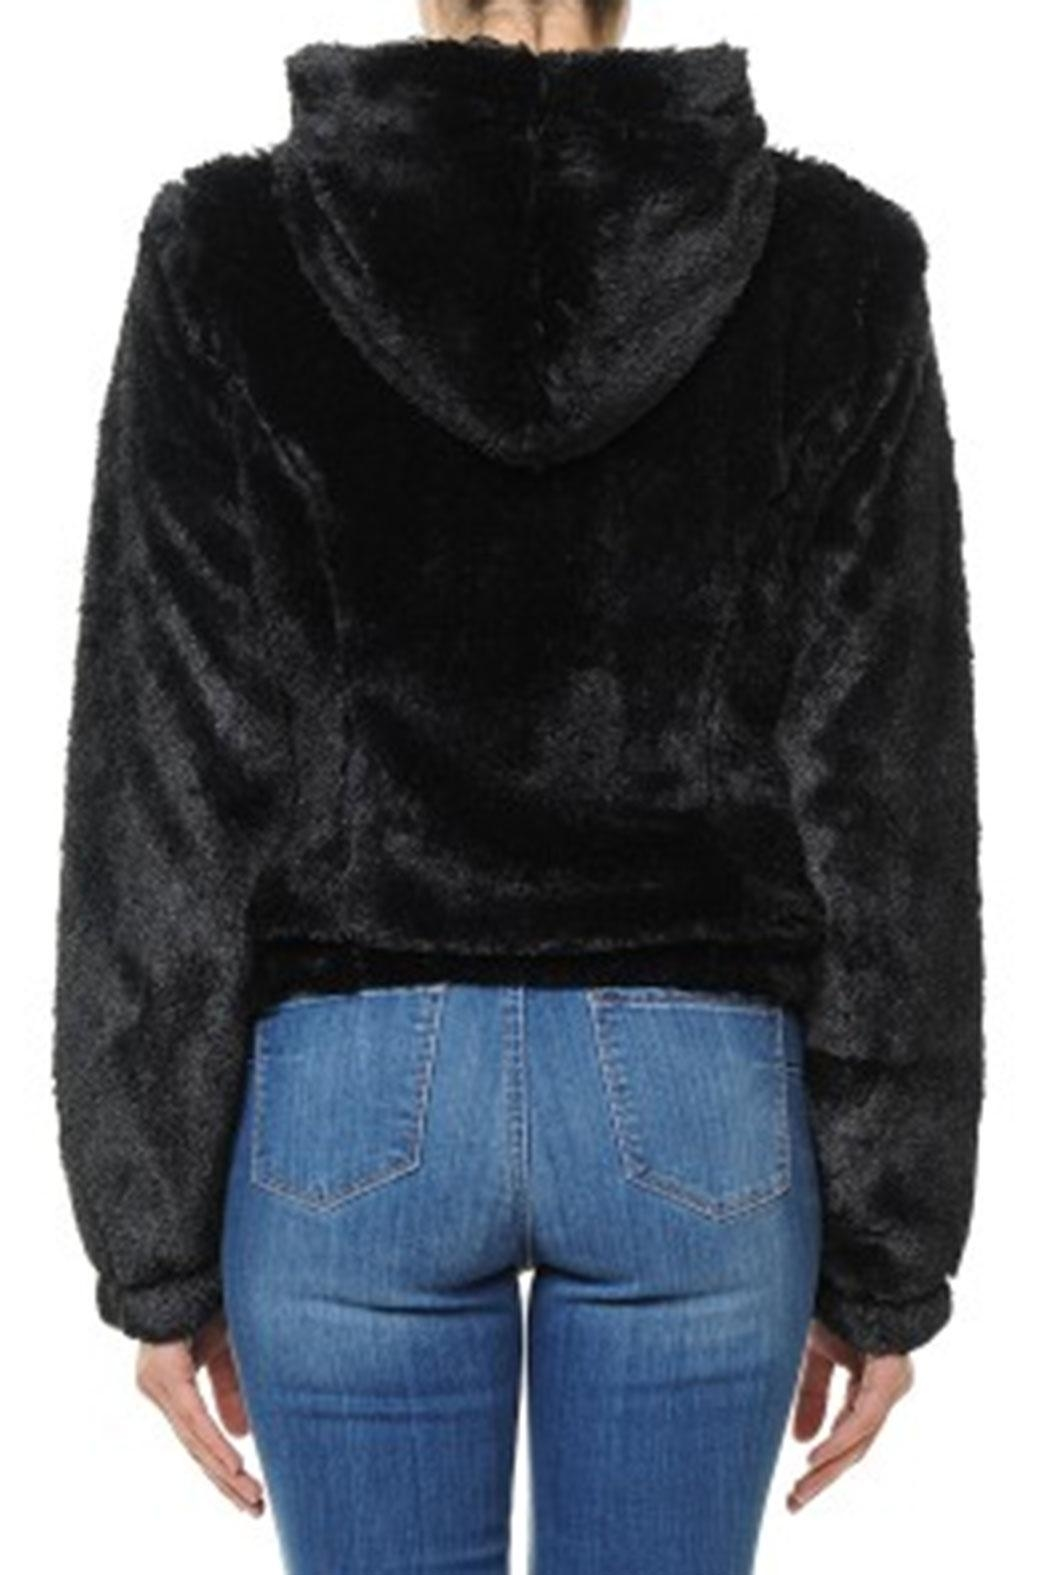 ambiance apparel Furry Zip-Up Hoodie - Side Cropped Image